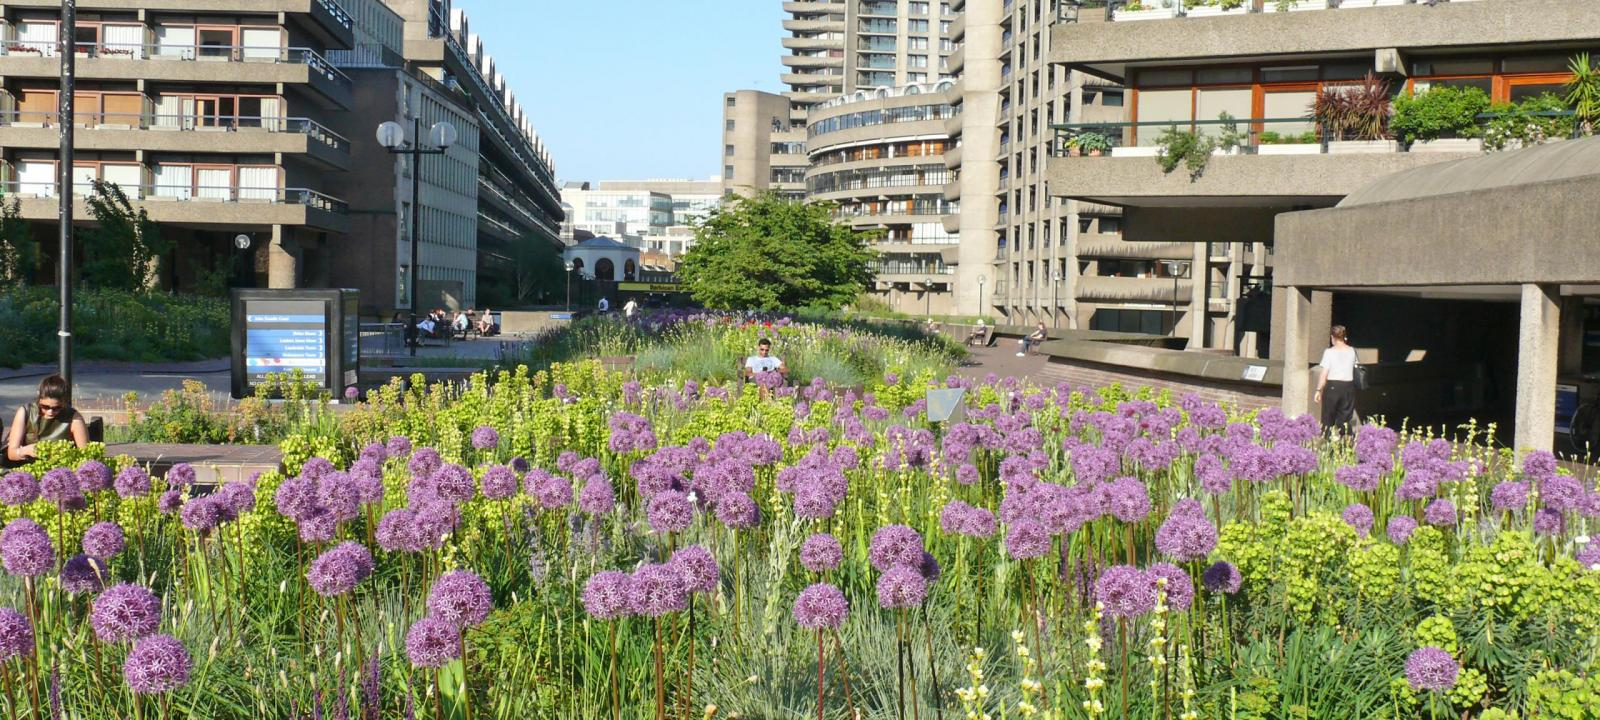 Home Page Zinco Green Roof Systems Uk